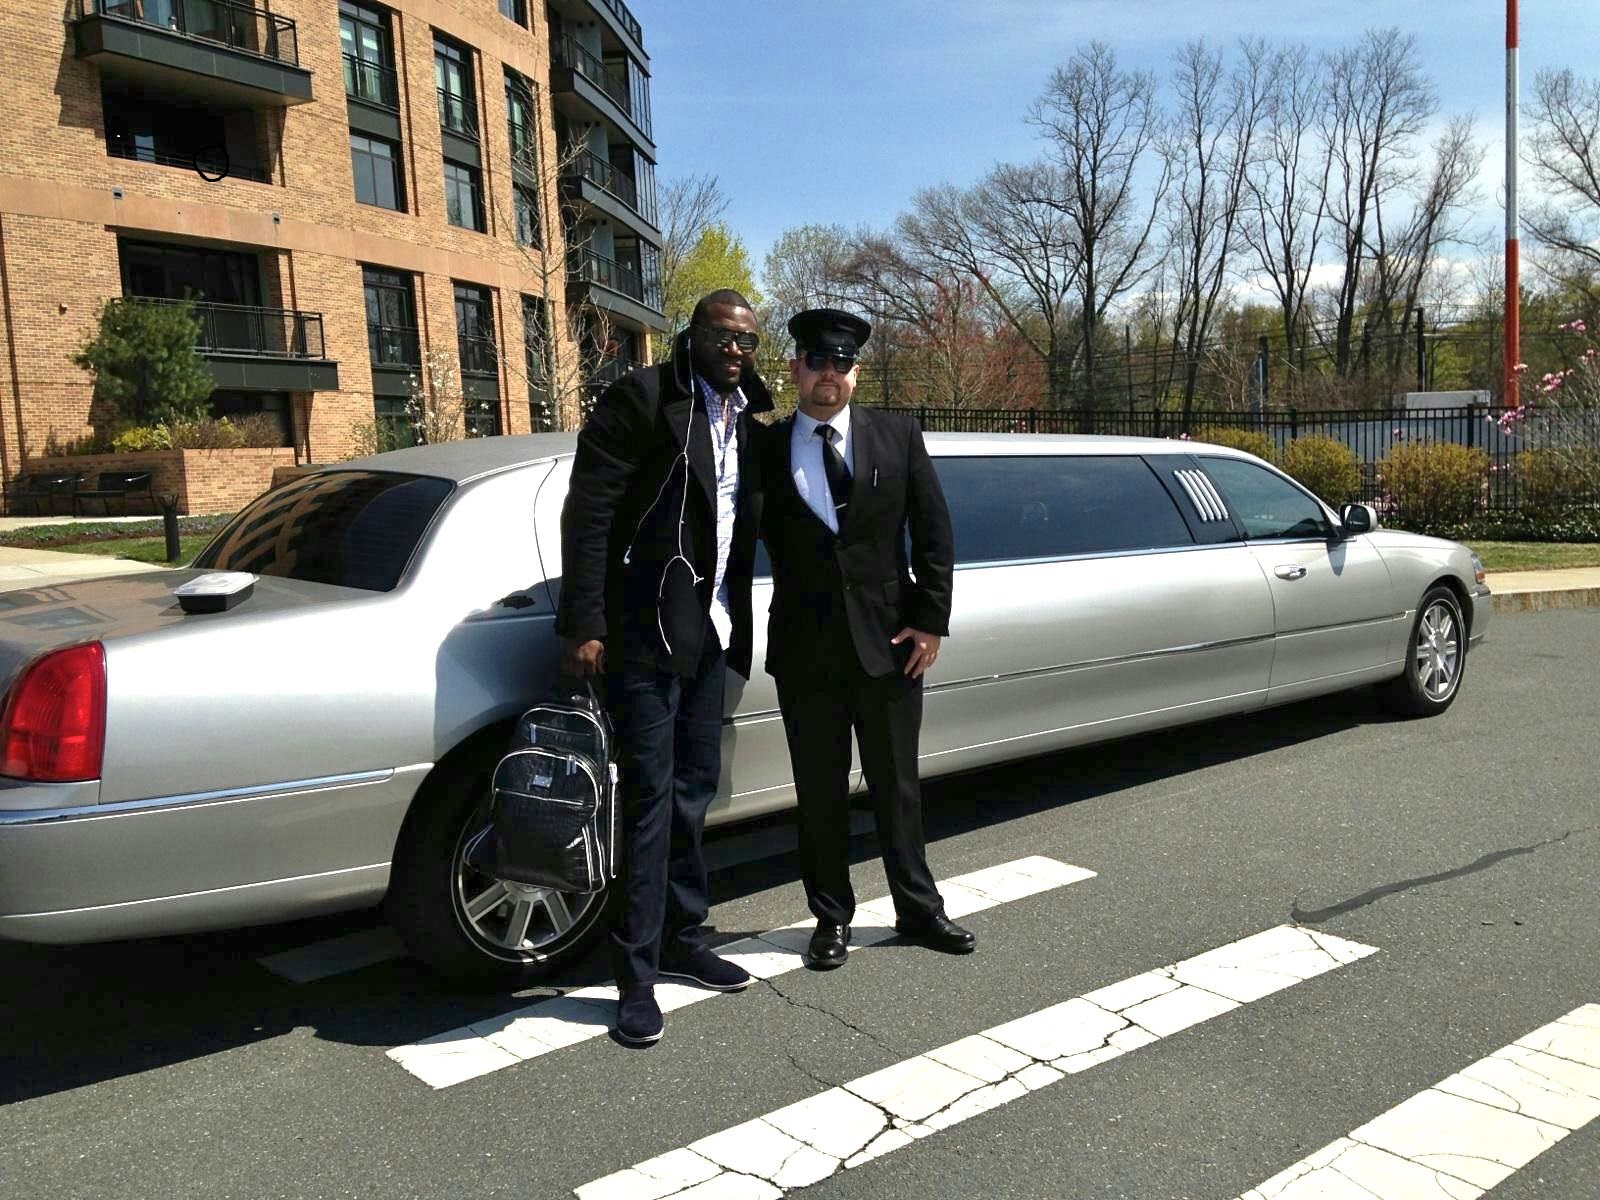 Limos for Rent Leominster MA 01453